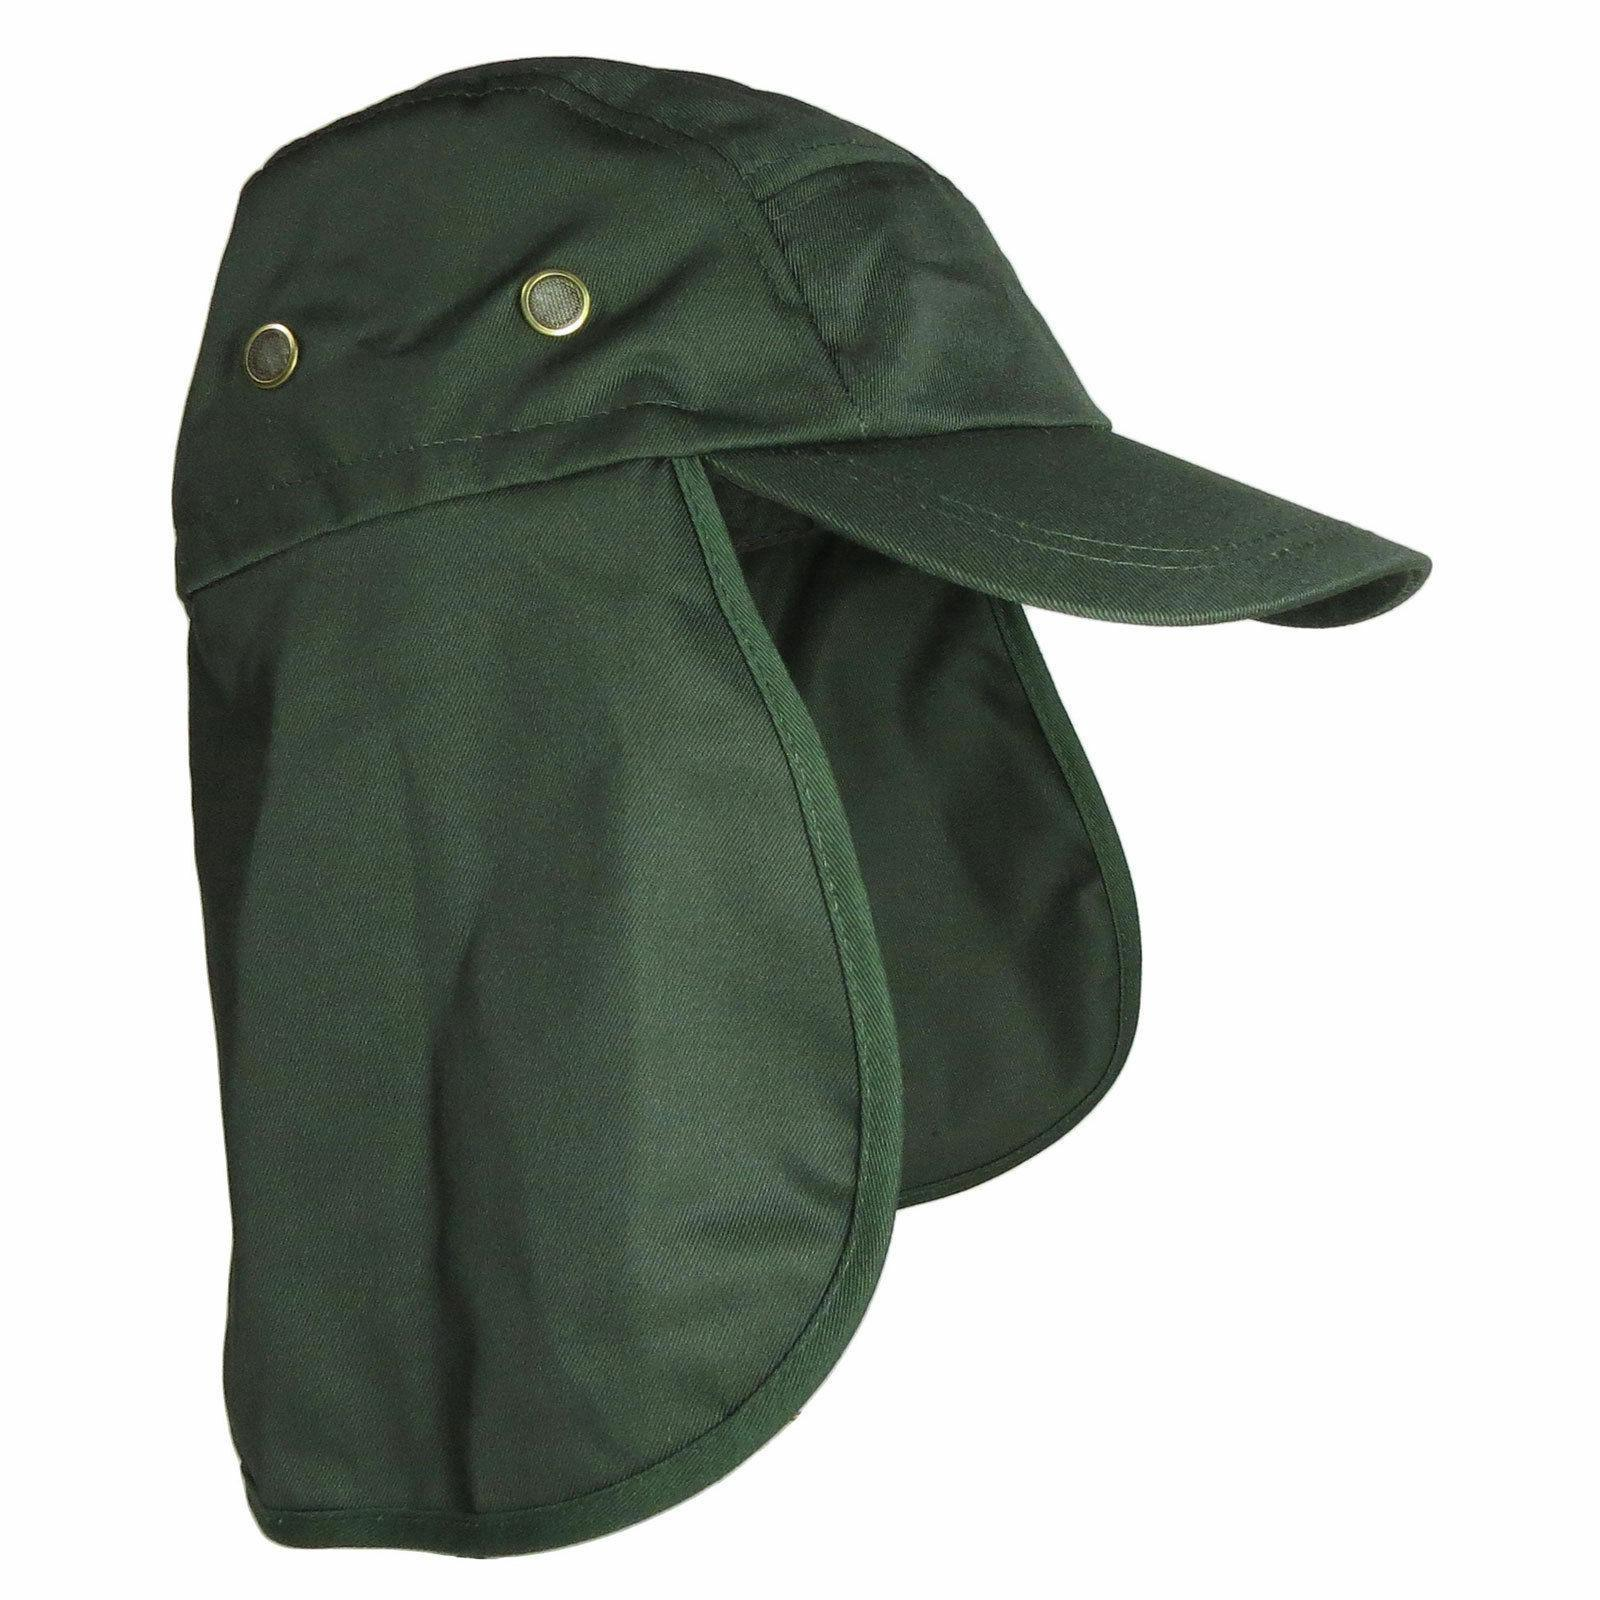 Baseball Cap Camping Boonie Fishing Neck Cover Army Hat